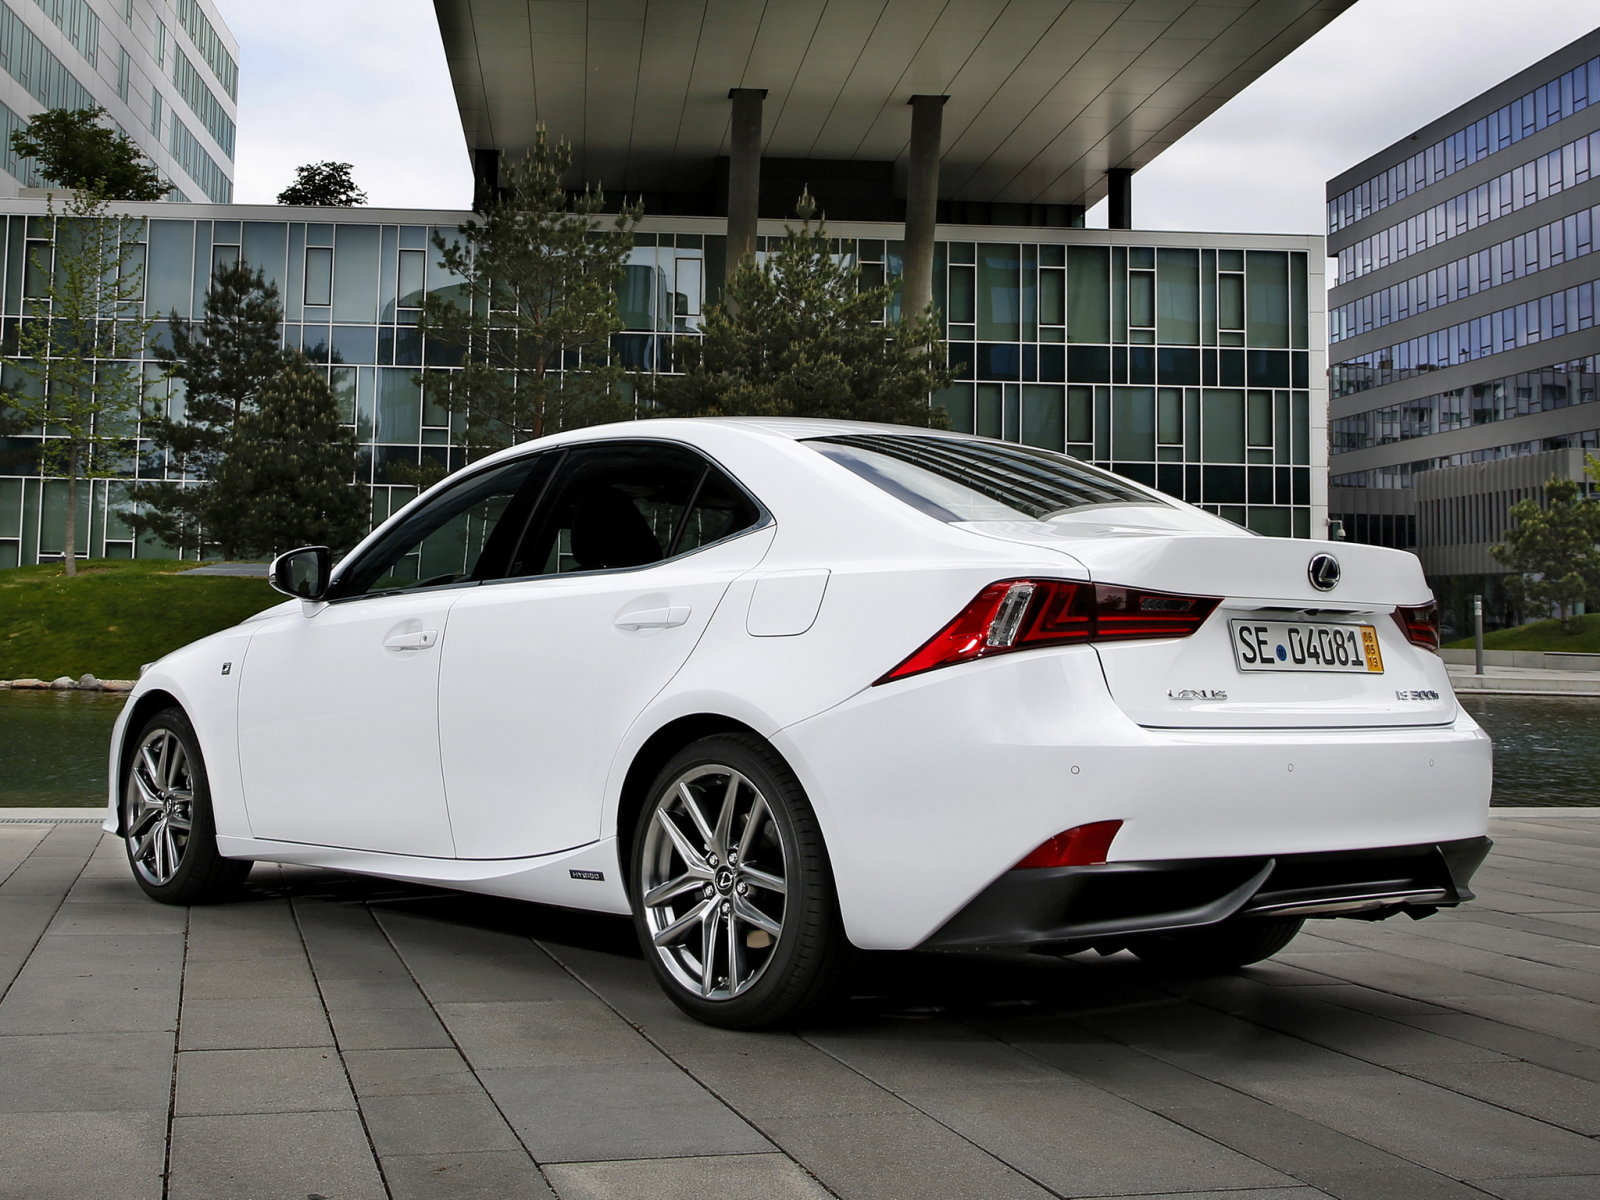 Lexus Es 250 And 300h 42 likewise Lexus Es 250 And 300h 40 additionally Index likewise Lexus Is 4 Door 2013 further 2017 Mercedes Amg Cla45 And 2018 Gla45 First Drive Review. on lexus is 250